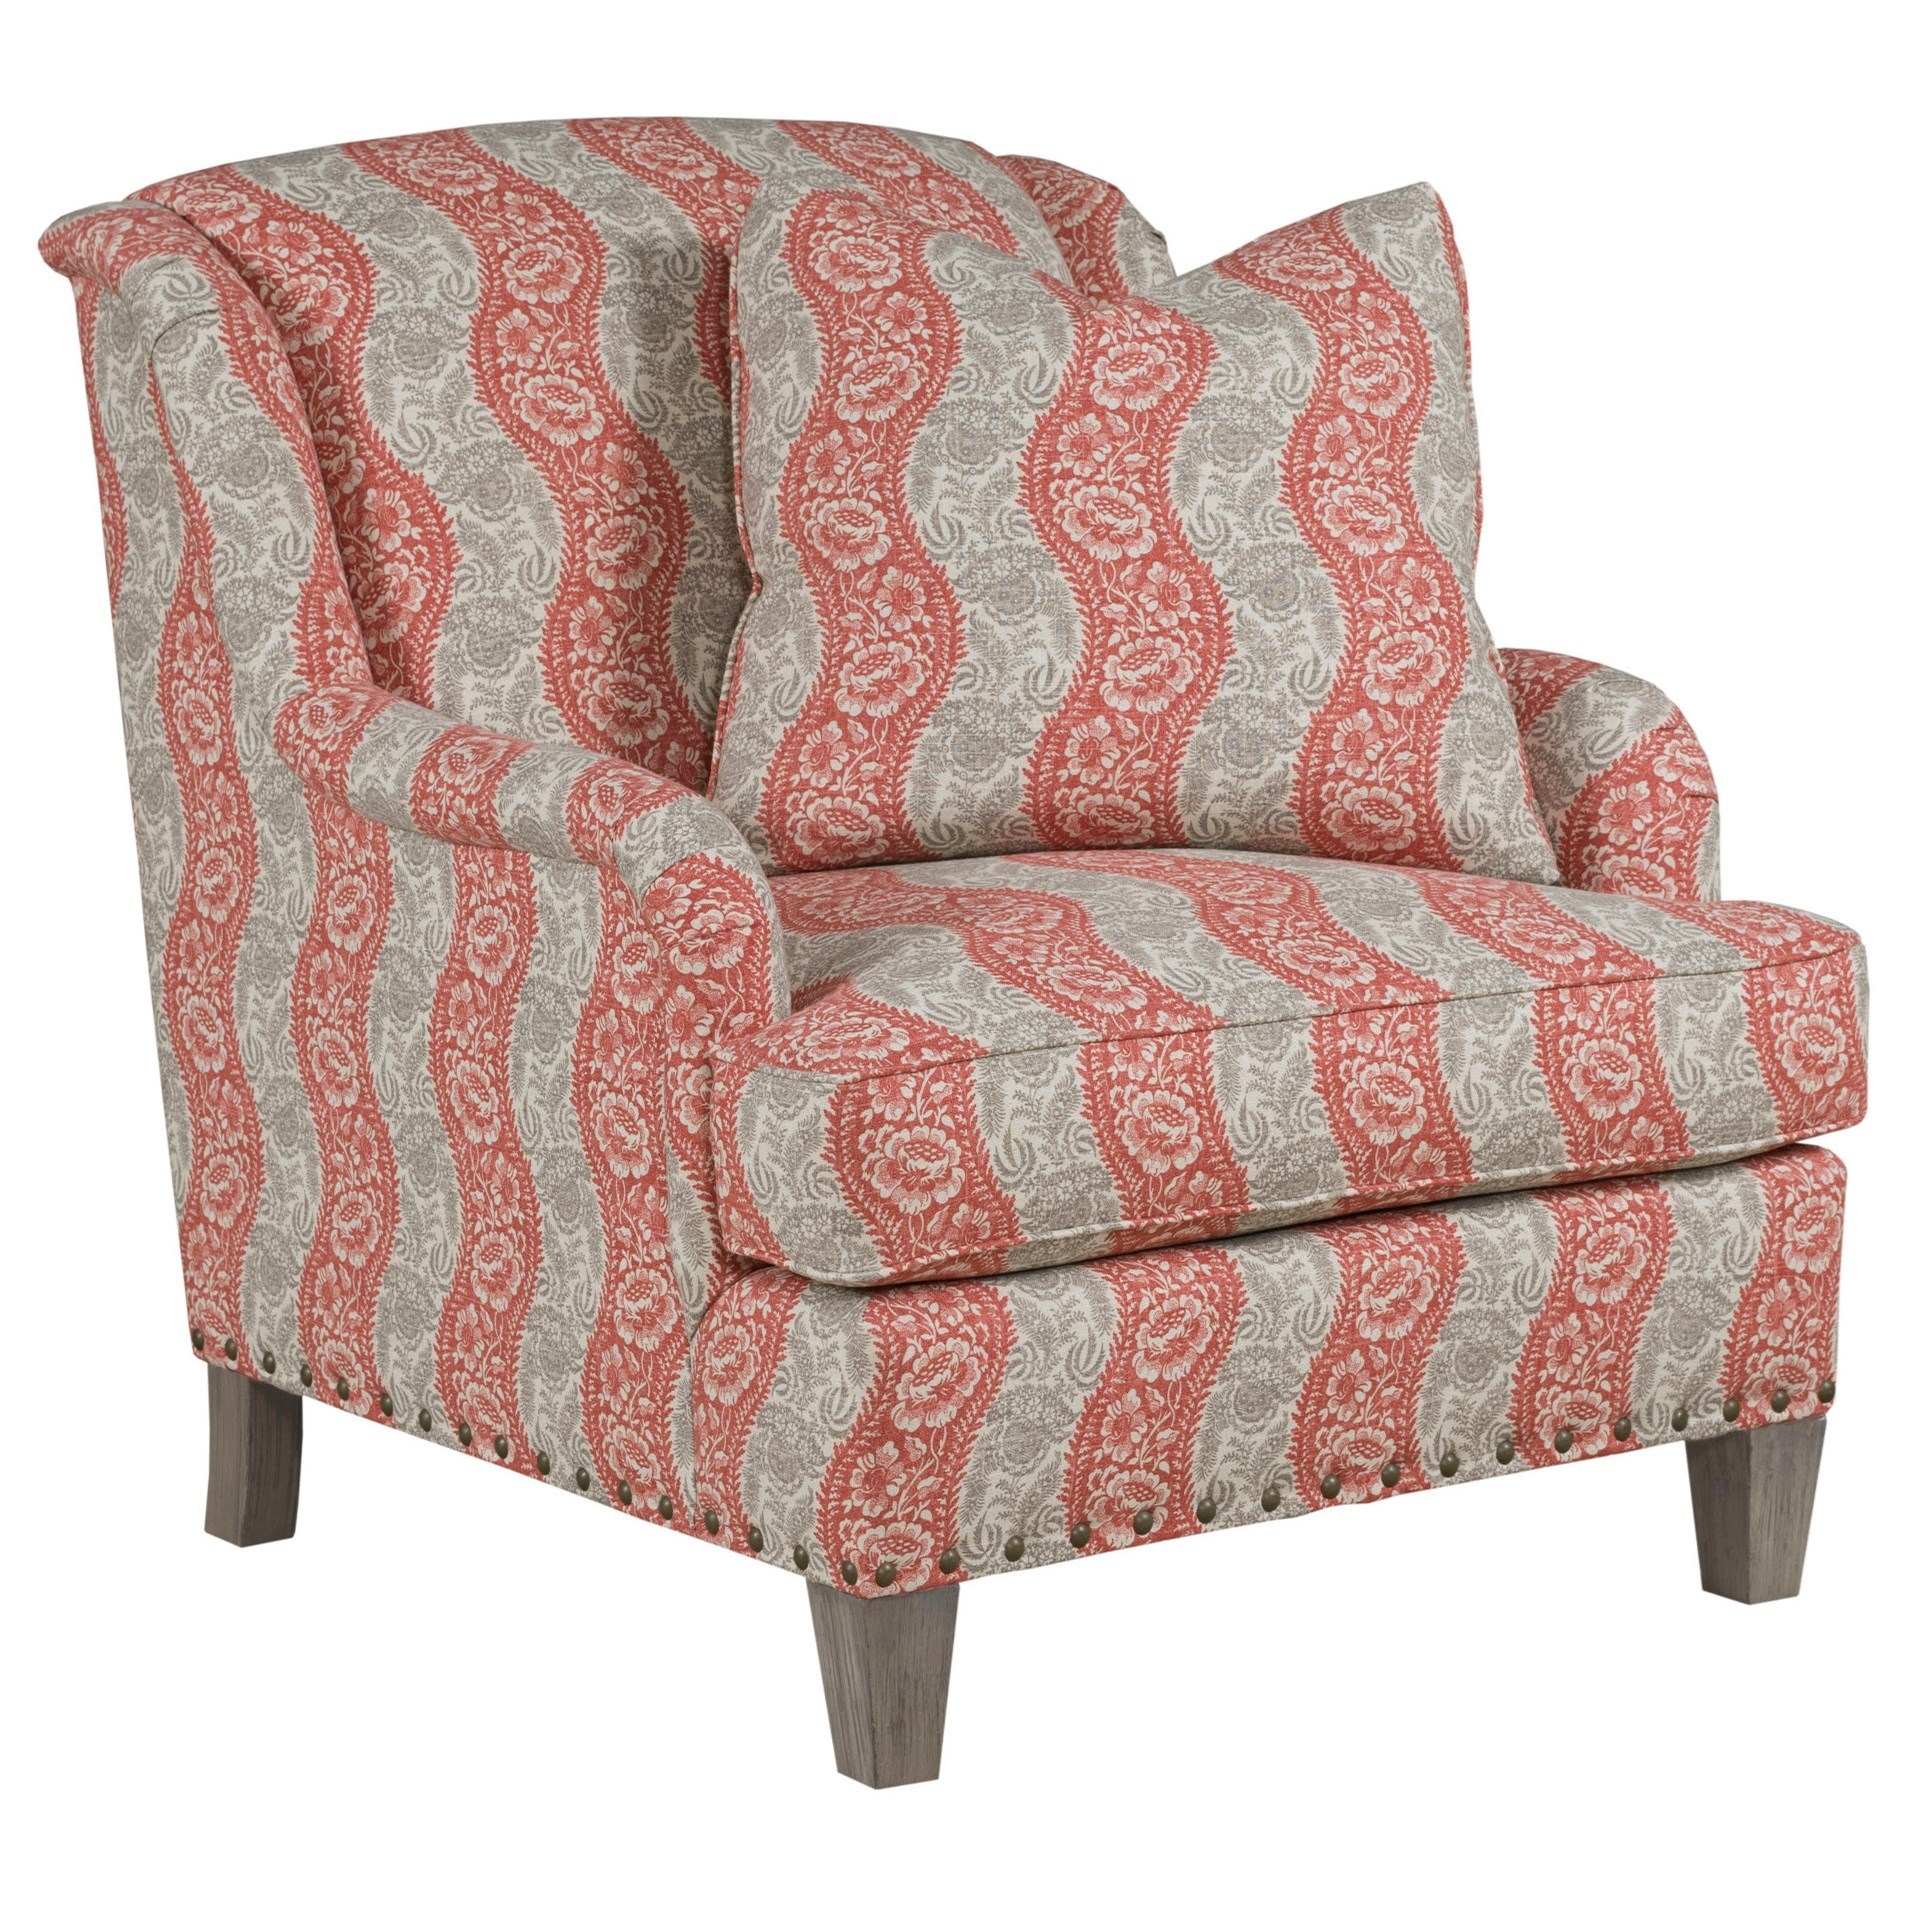 Kincaid Furniture Tuesday Tuesday Upholstered Chair With